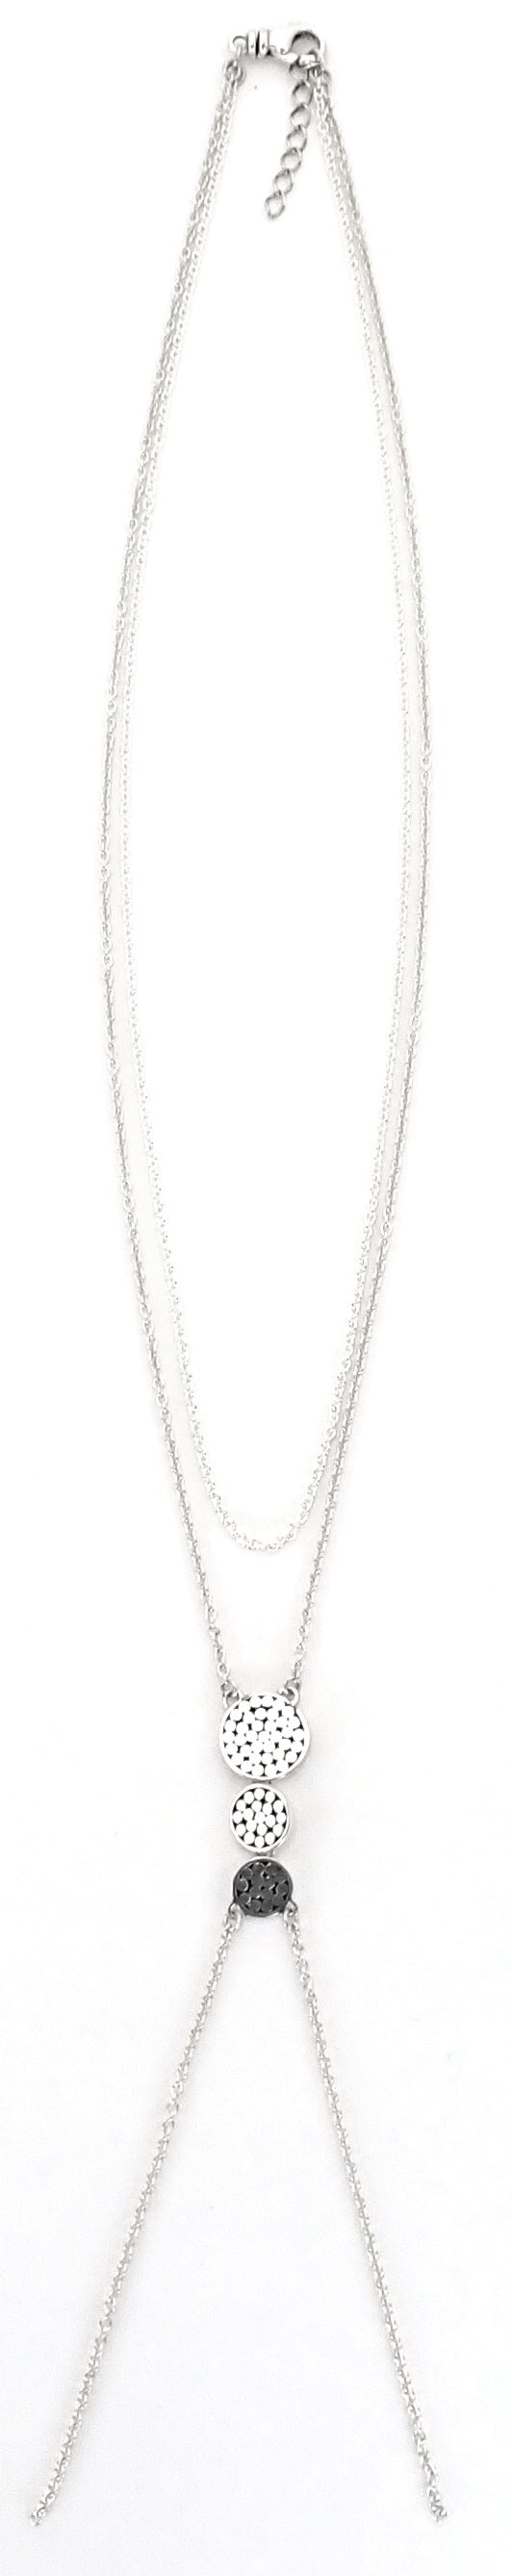 N842 KALA Double Strand Necklace With Three Disc Stations